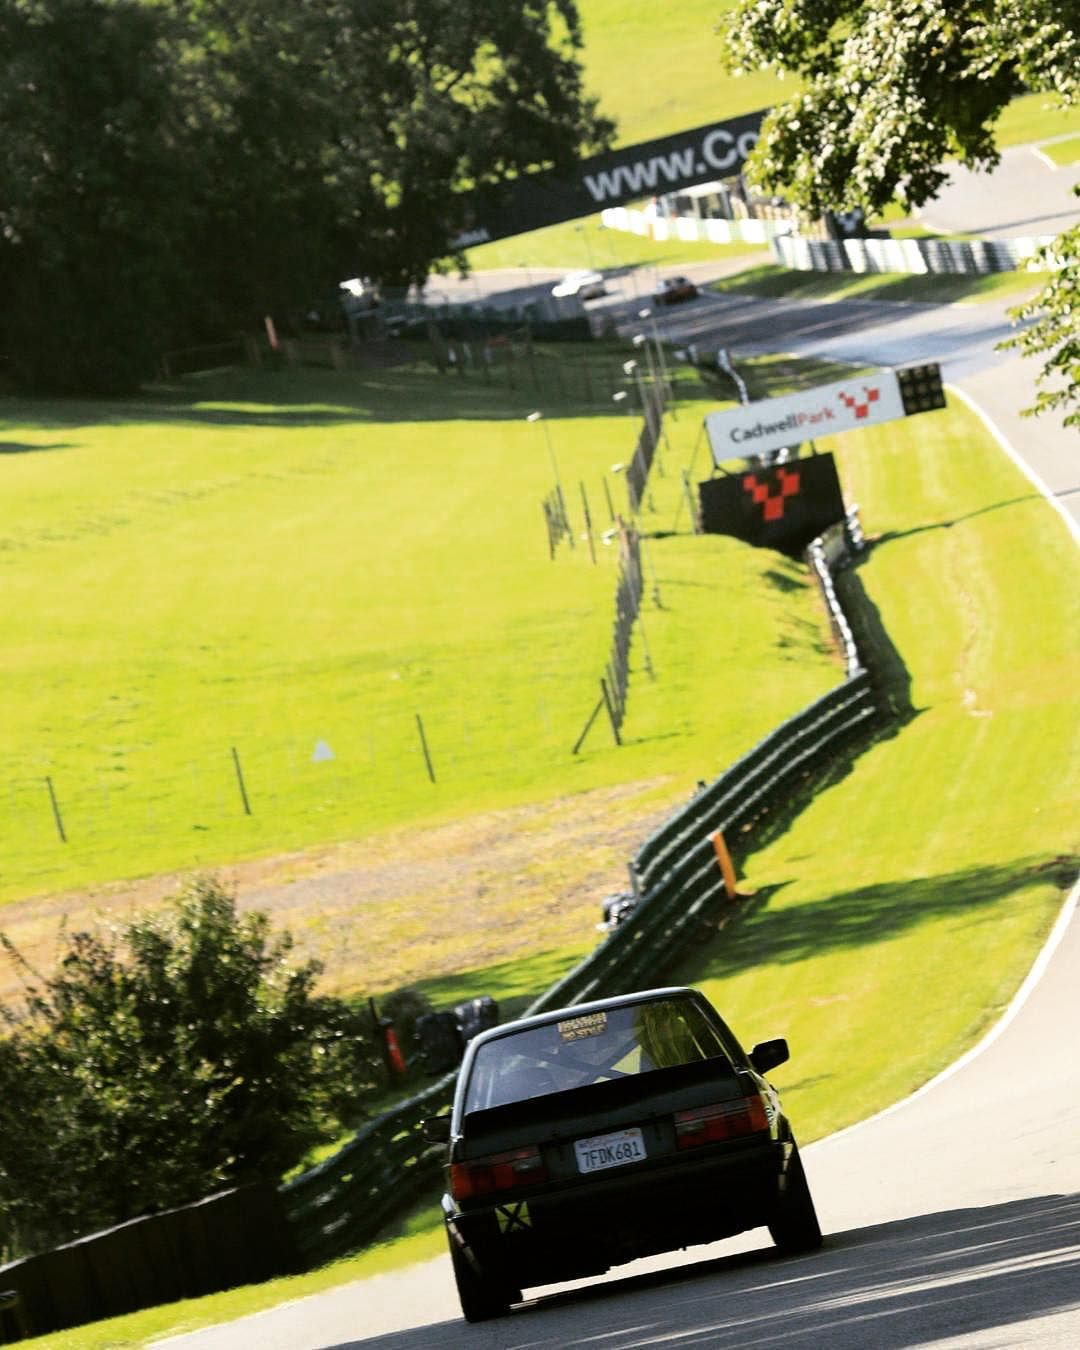 Awesome Shot Of Cadwell Park For This Weeks Tracktuesday Via Zach King Use Getontrack Dm Us Or Tag Us To Get Featured Zach King Photo Track